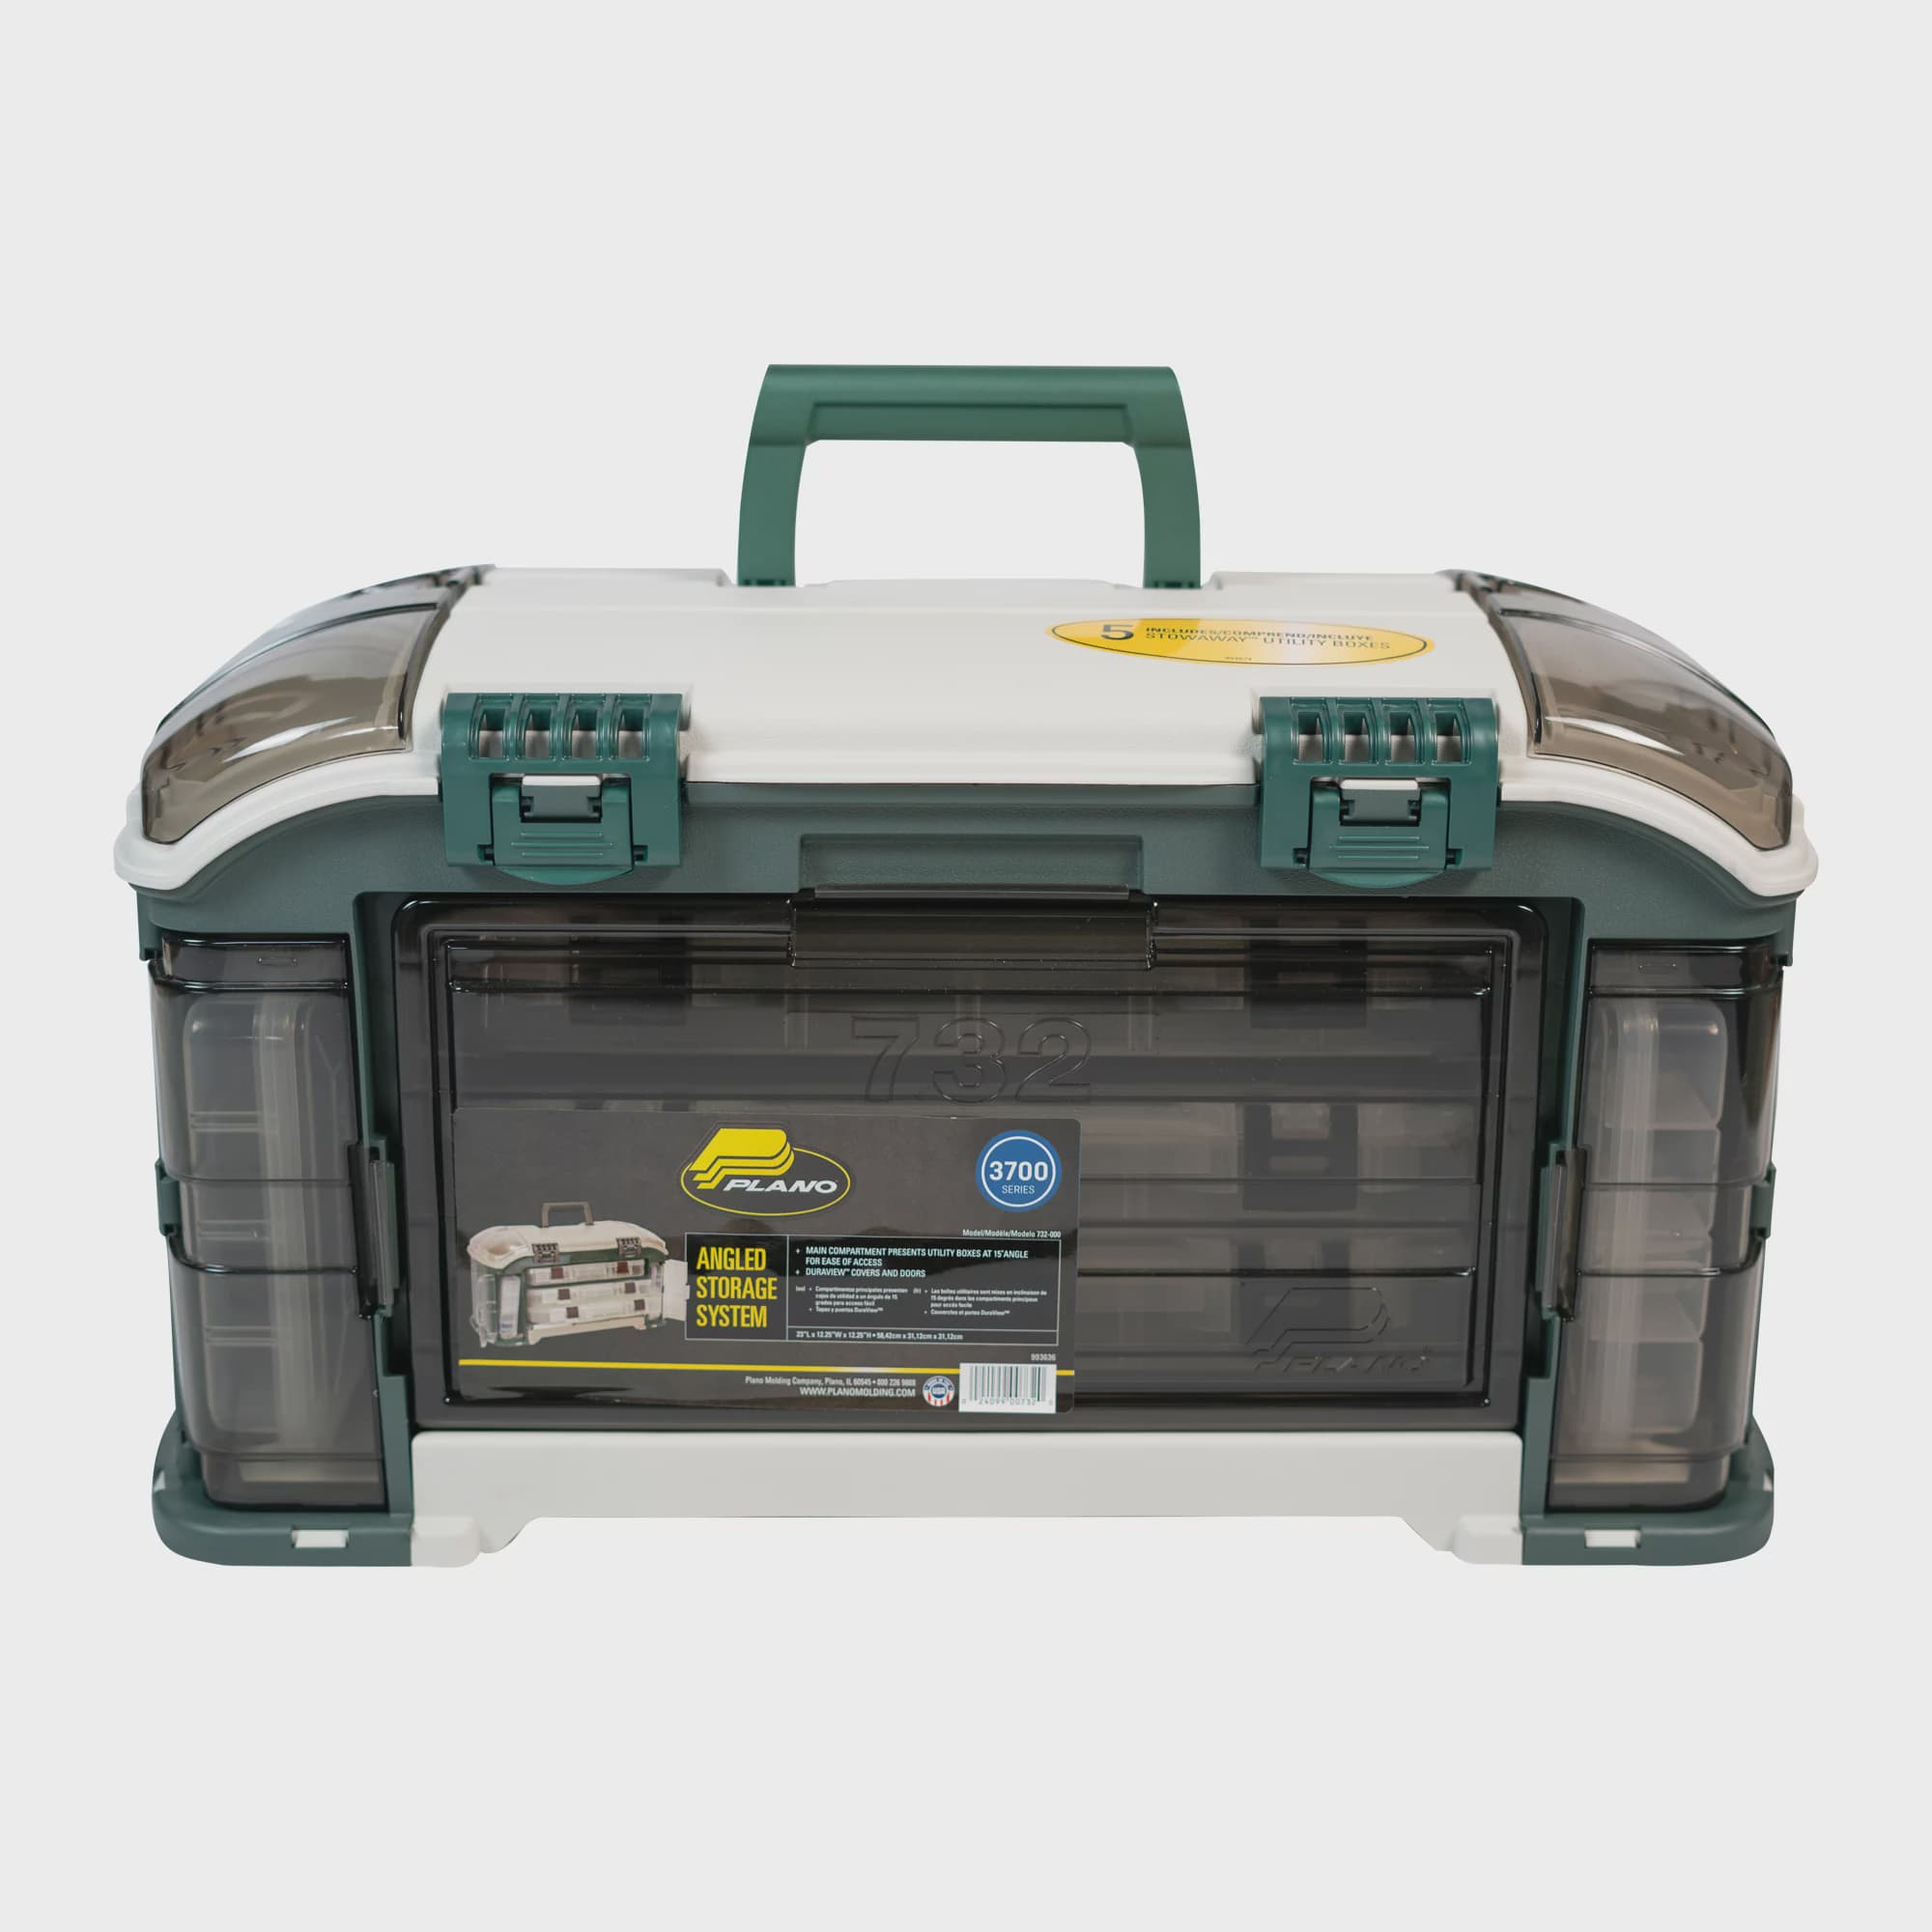 Fishing Tackle Storage Plano Angled Tackle System with Three 3560 Stowaway Boxes Pack of 2 Premium Tackle Storage